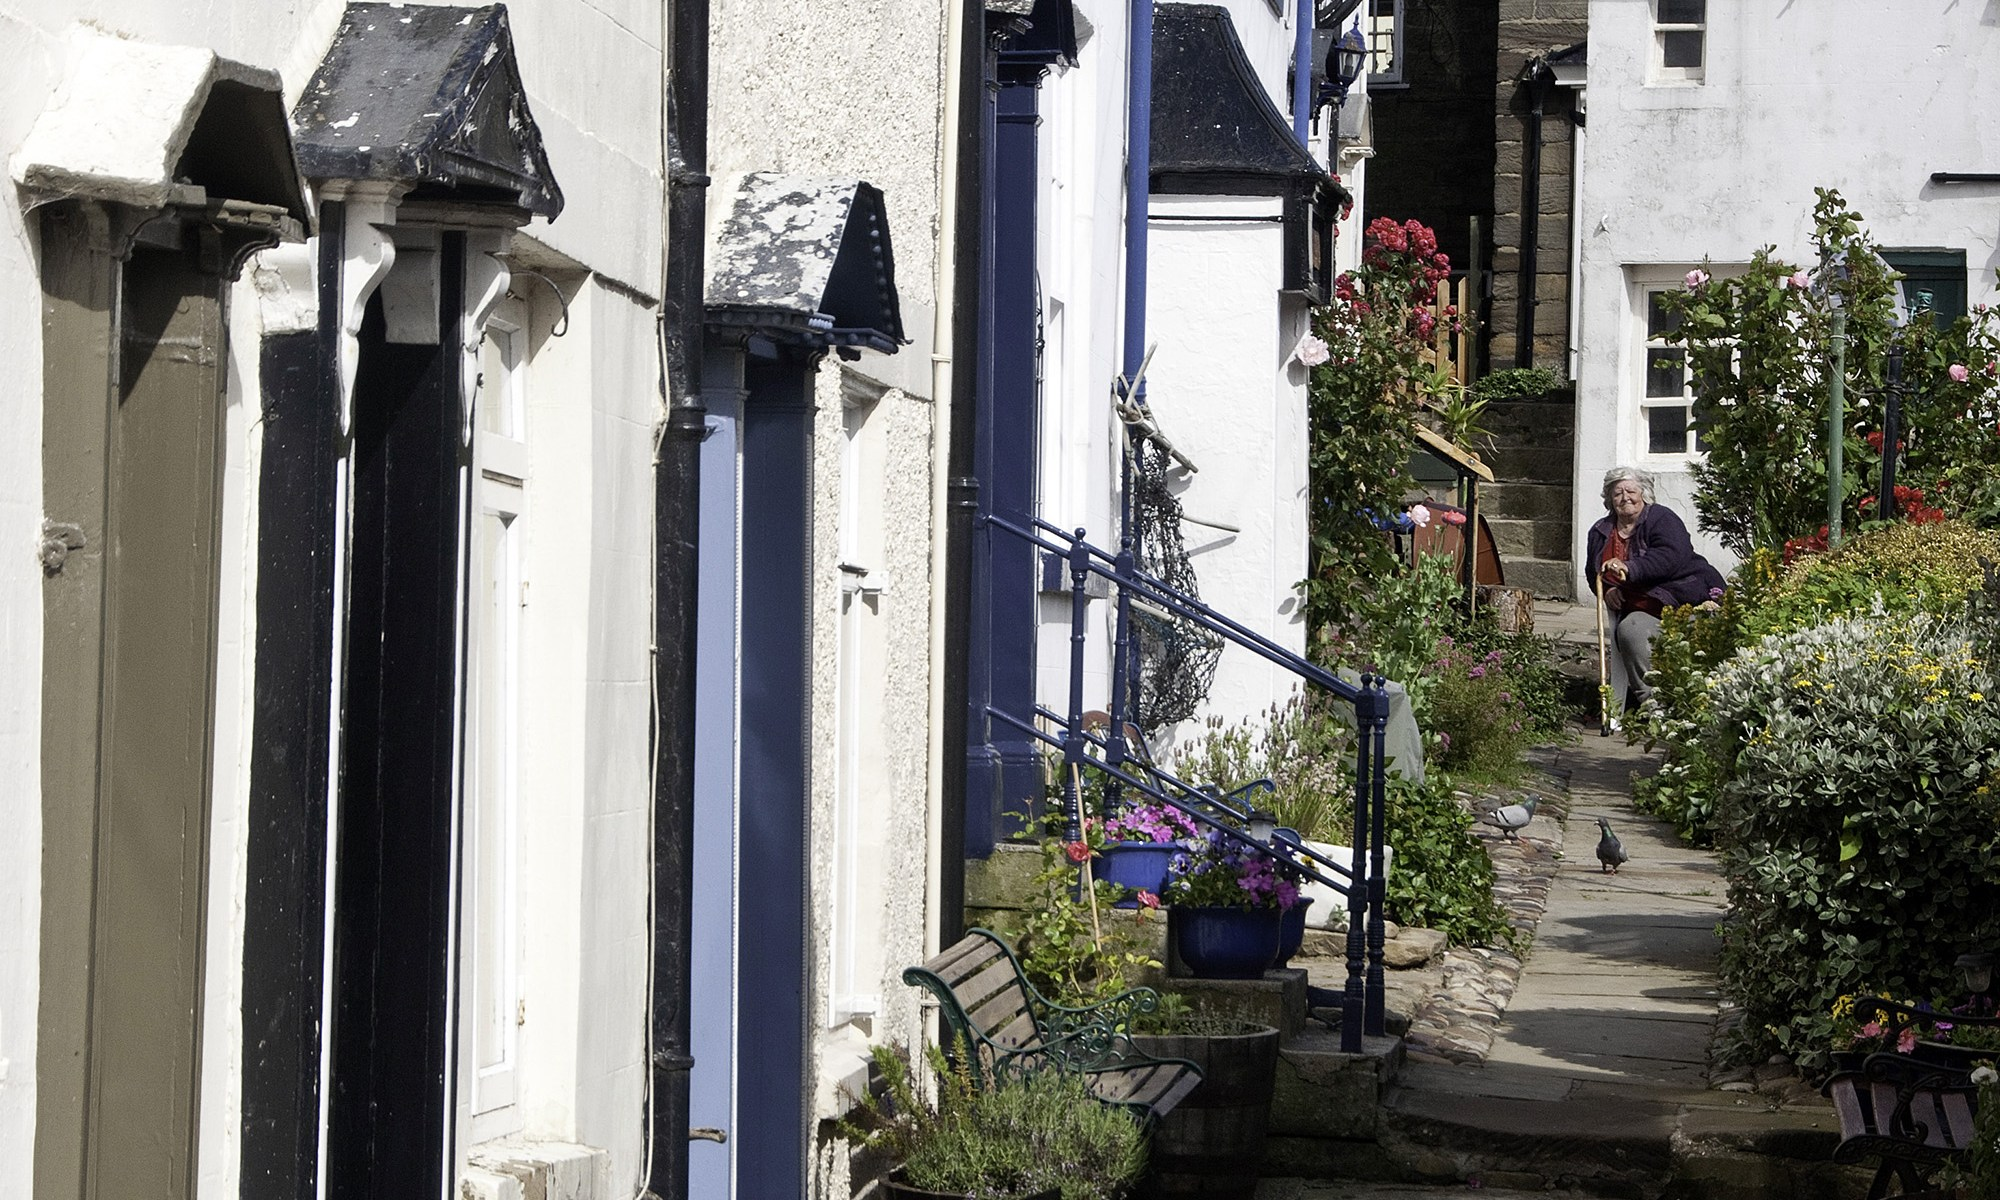 The narrow streets of Staithes